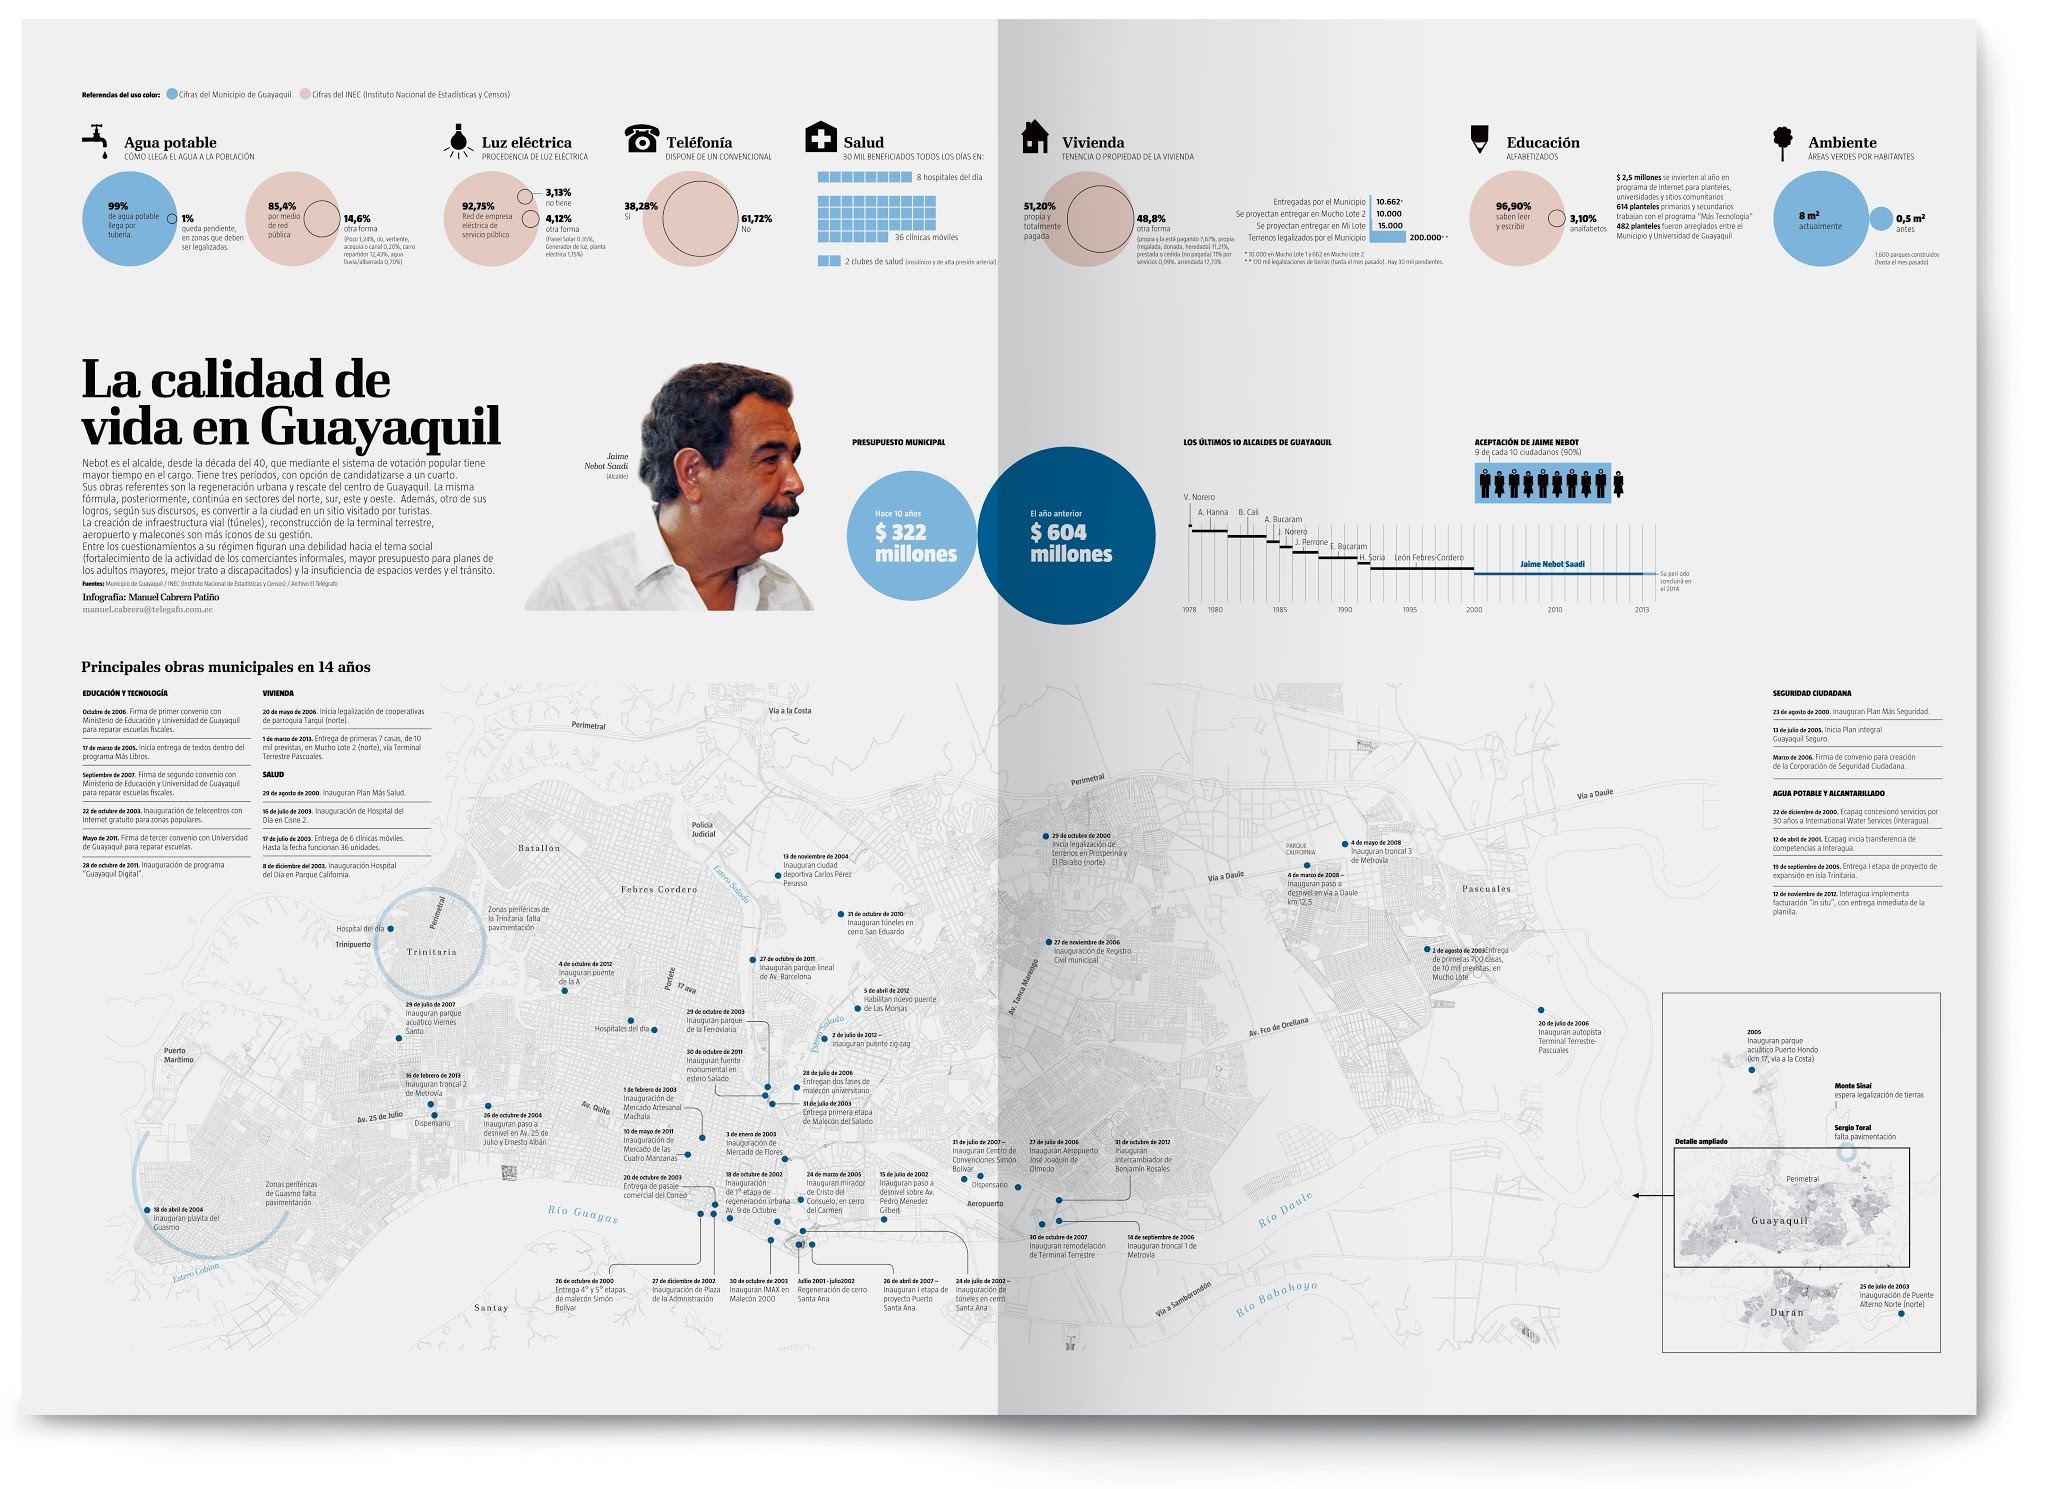 Guayaquil by the Numbers, infographic by Manuel Cabrera Patiño | El Telegrafo